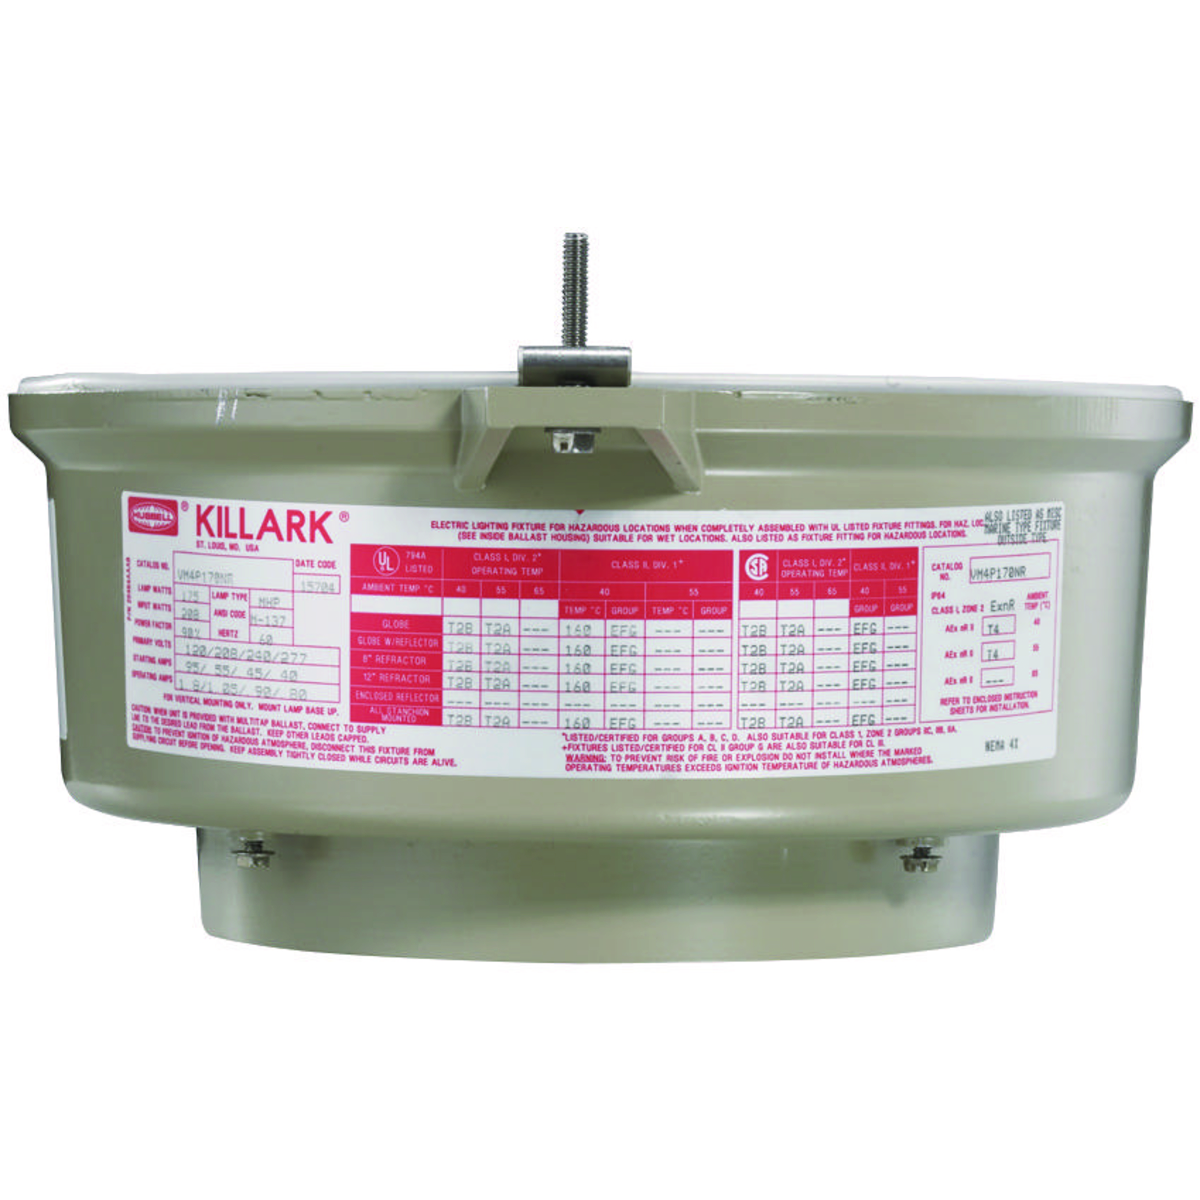 Killark Led High Bay: VE4Q8484E30